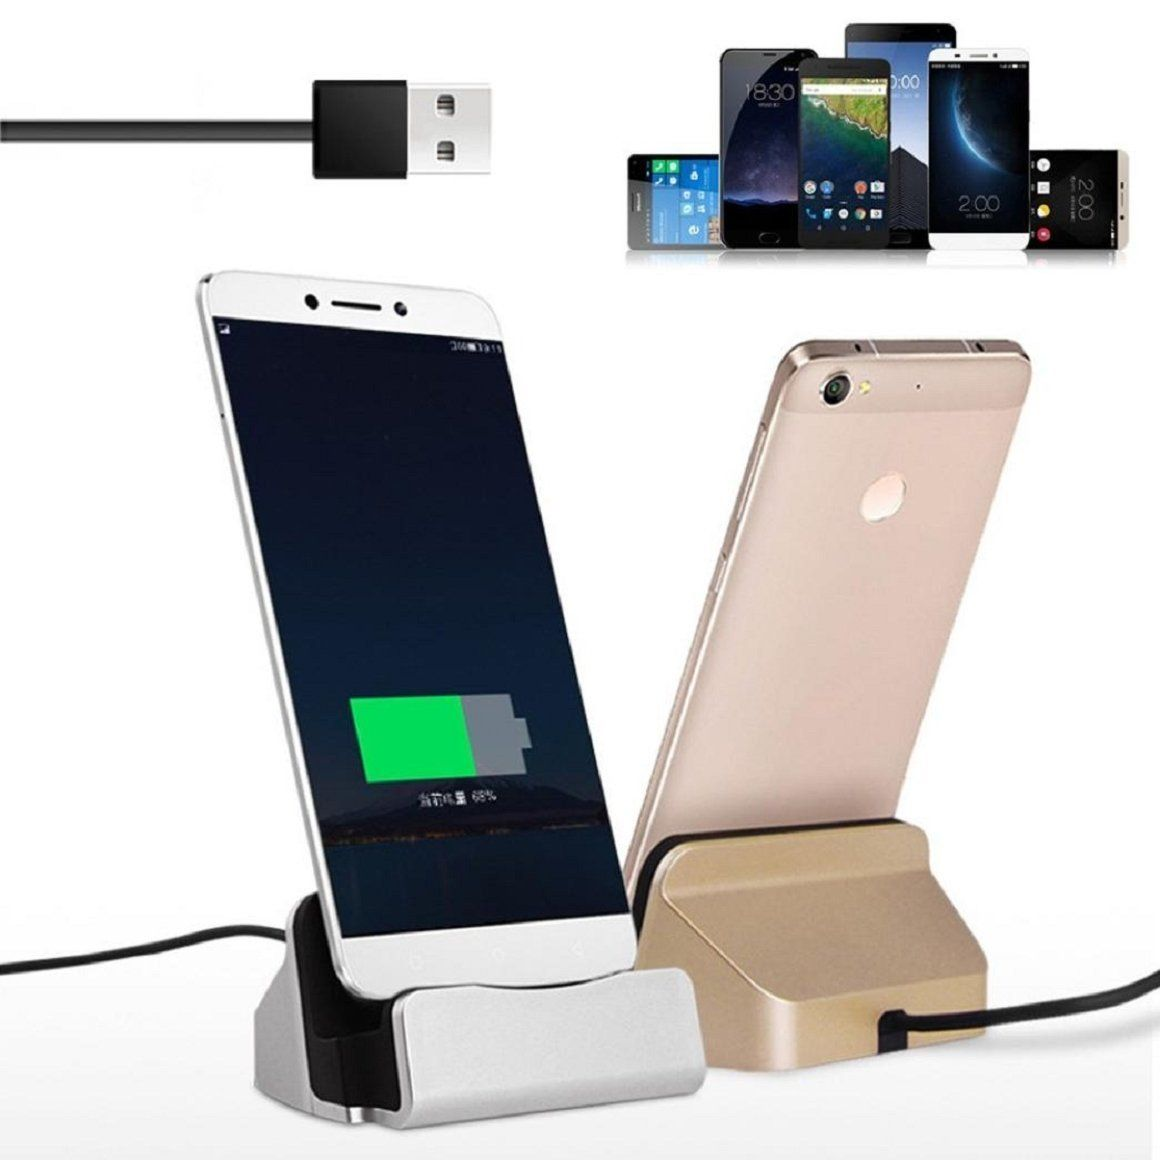 Best Selling USB 3.1 Type C Dock Station For LeEco Le 1s X500 X600 Le 2 LeEco Le Max 2 X620 X910 Charger Dock Station Stand Base